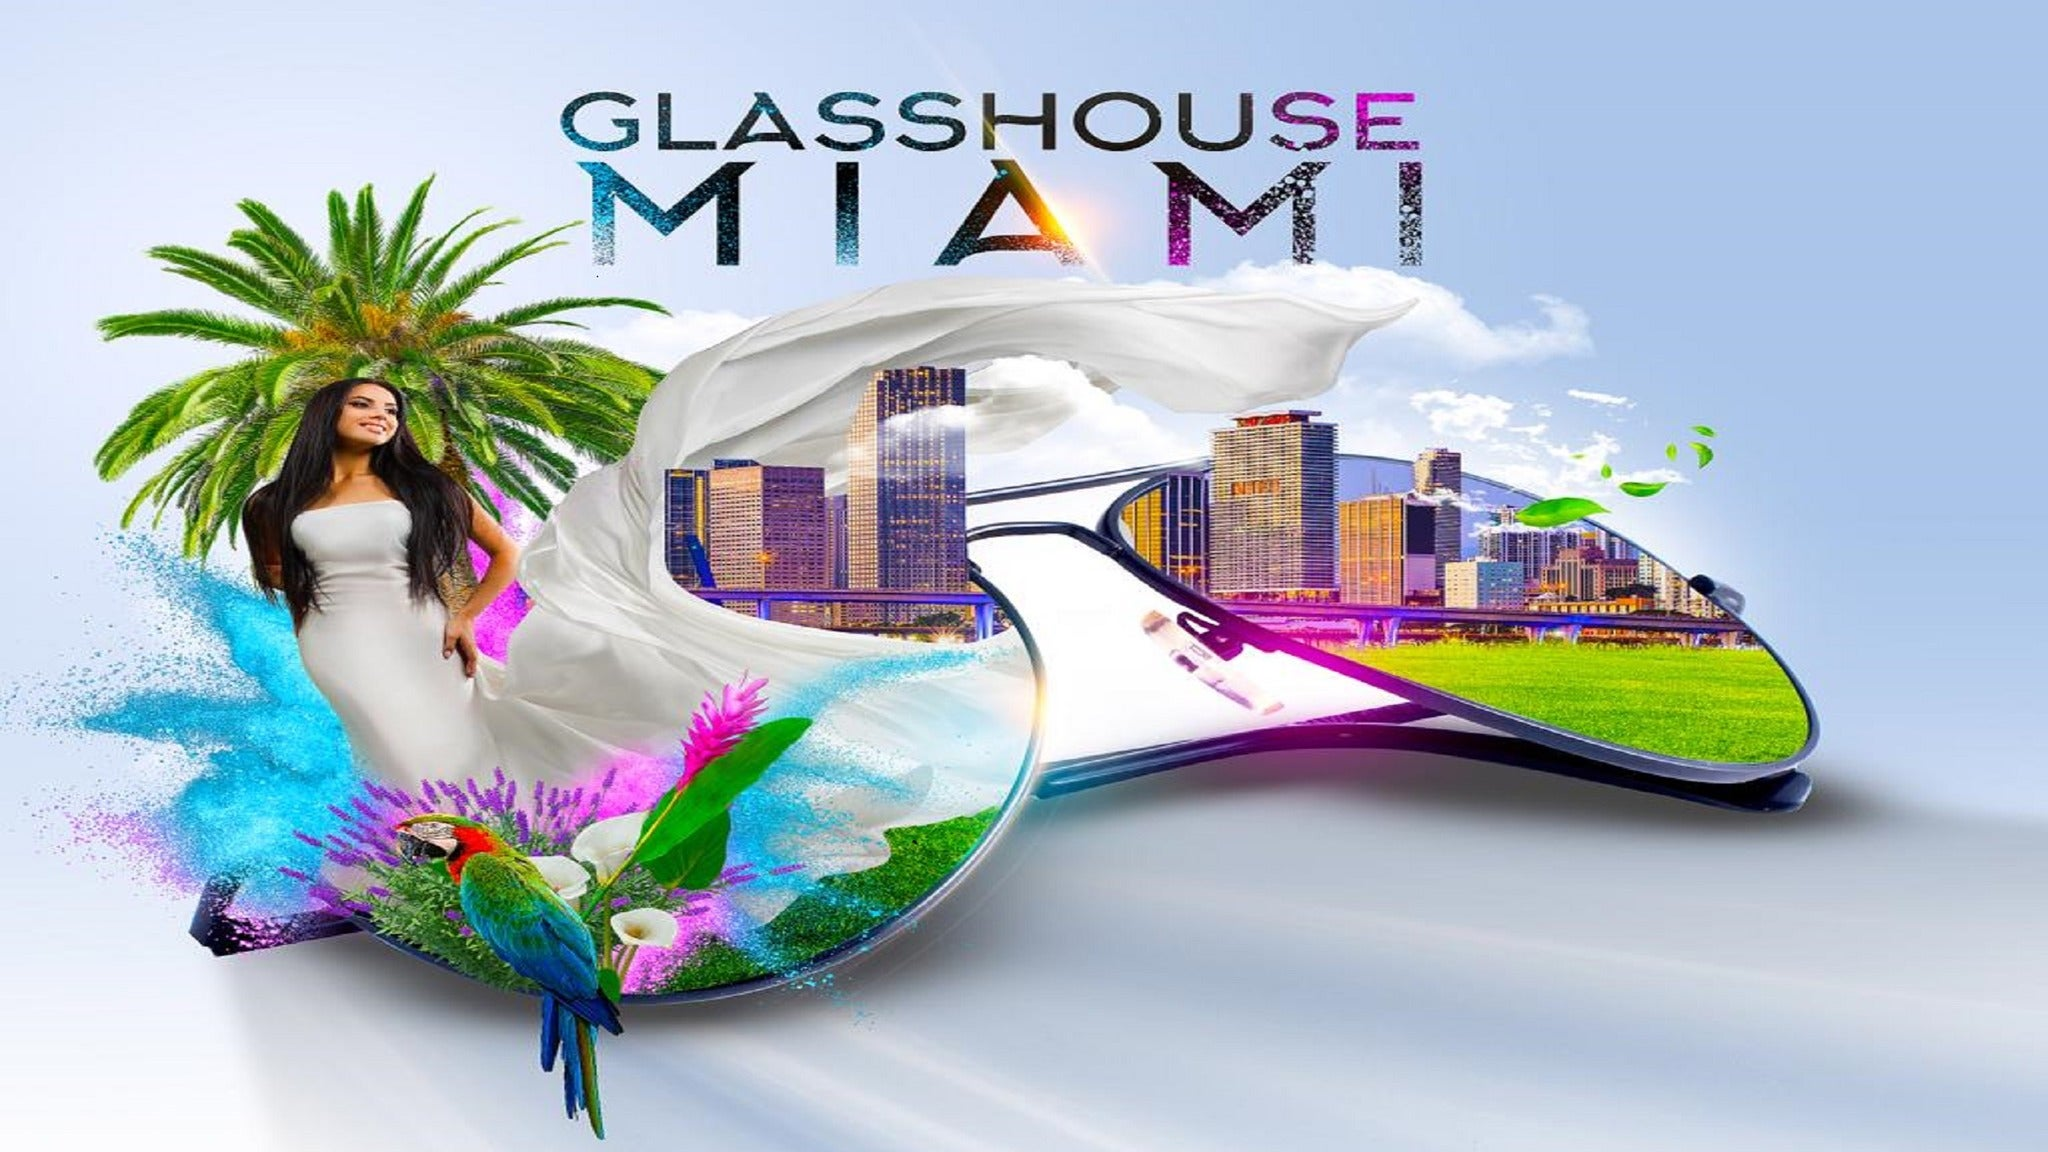 Glasshouse Miami